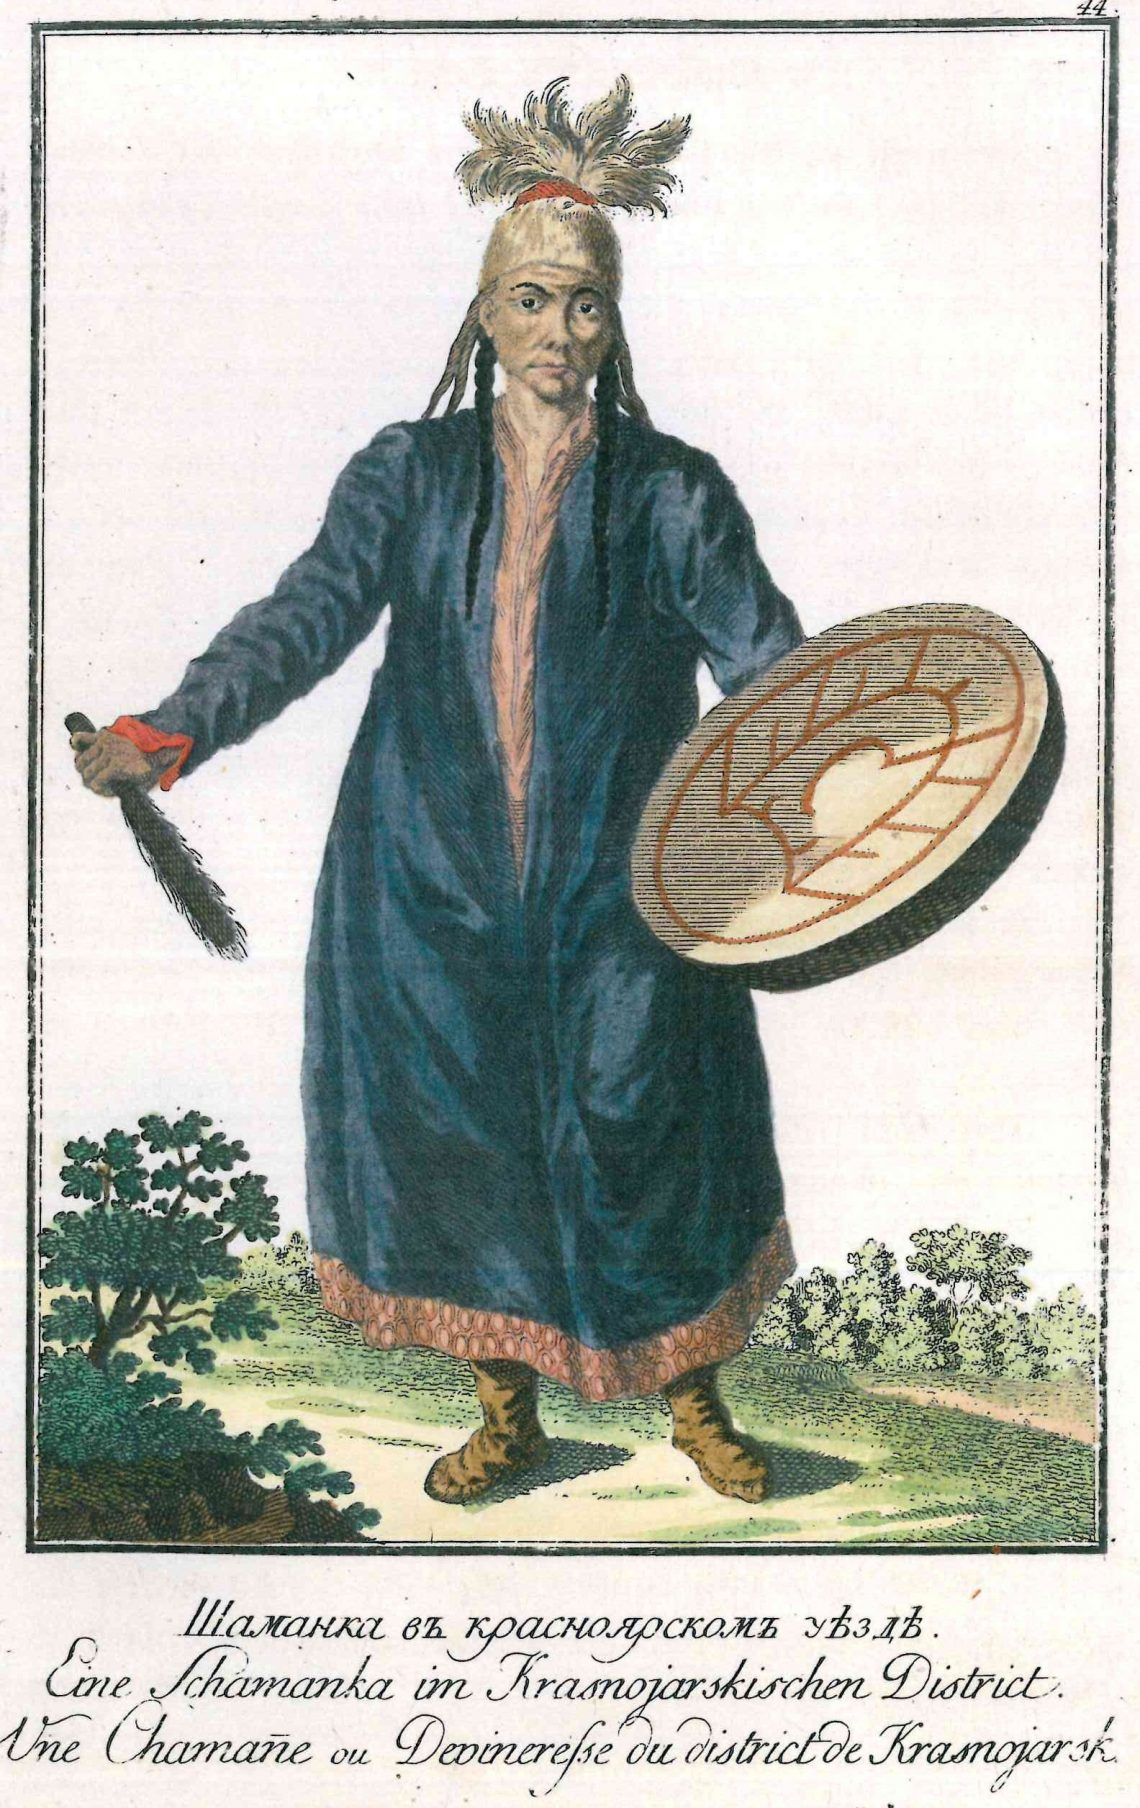 WOMEN AND DRUMMING: THERAPEUTICAL, SPIRITUAL AND POLITICAL IMPLICATIONS